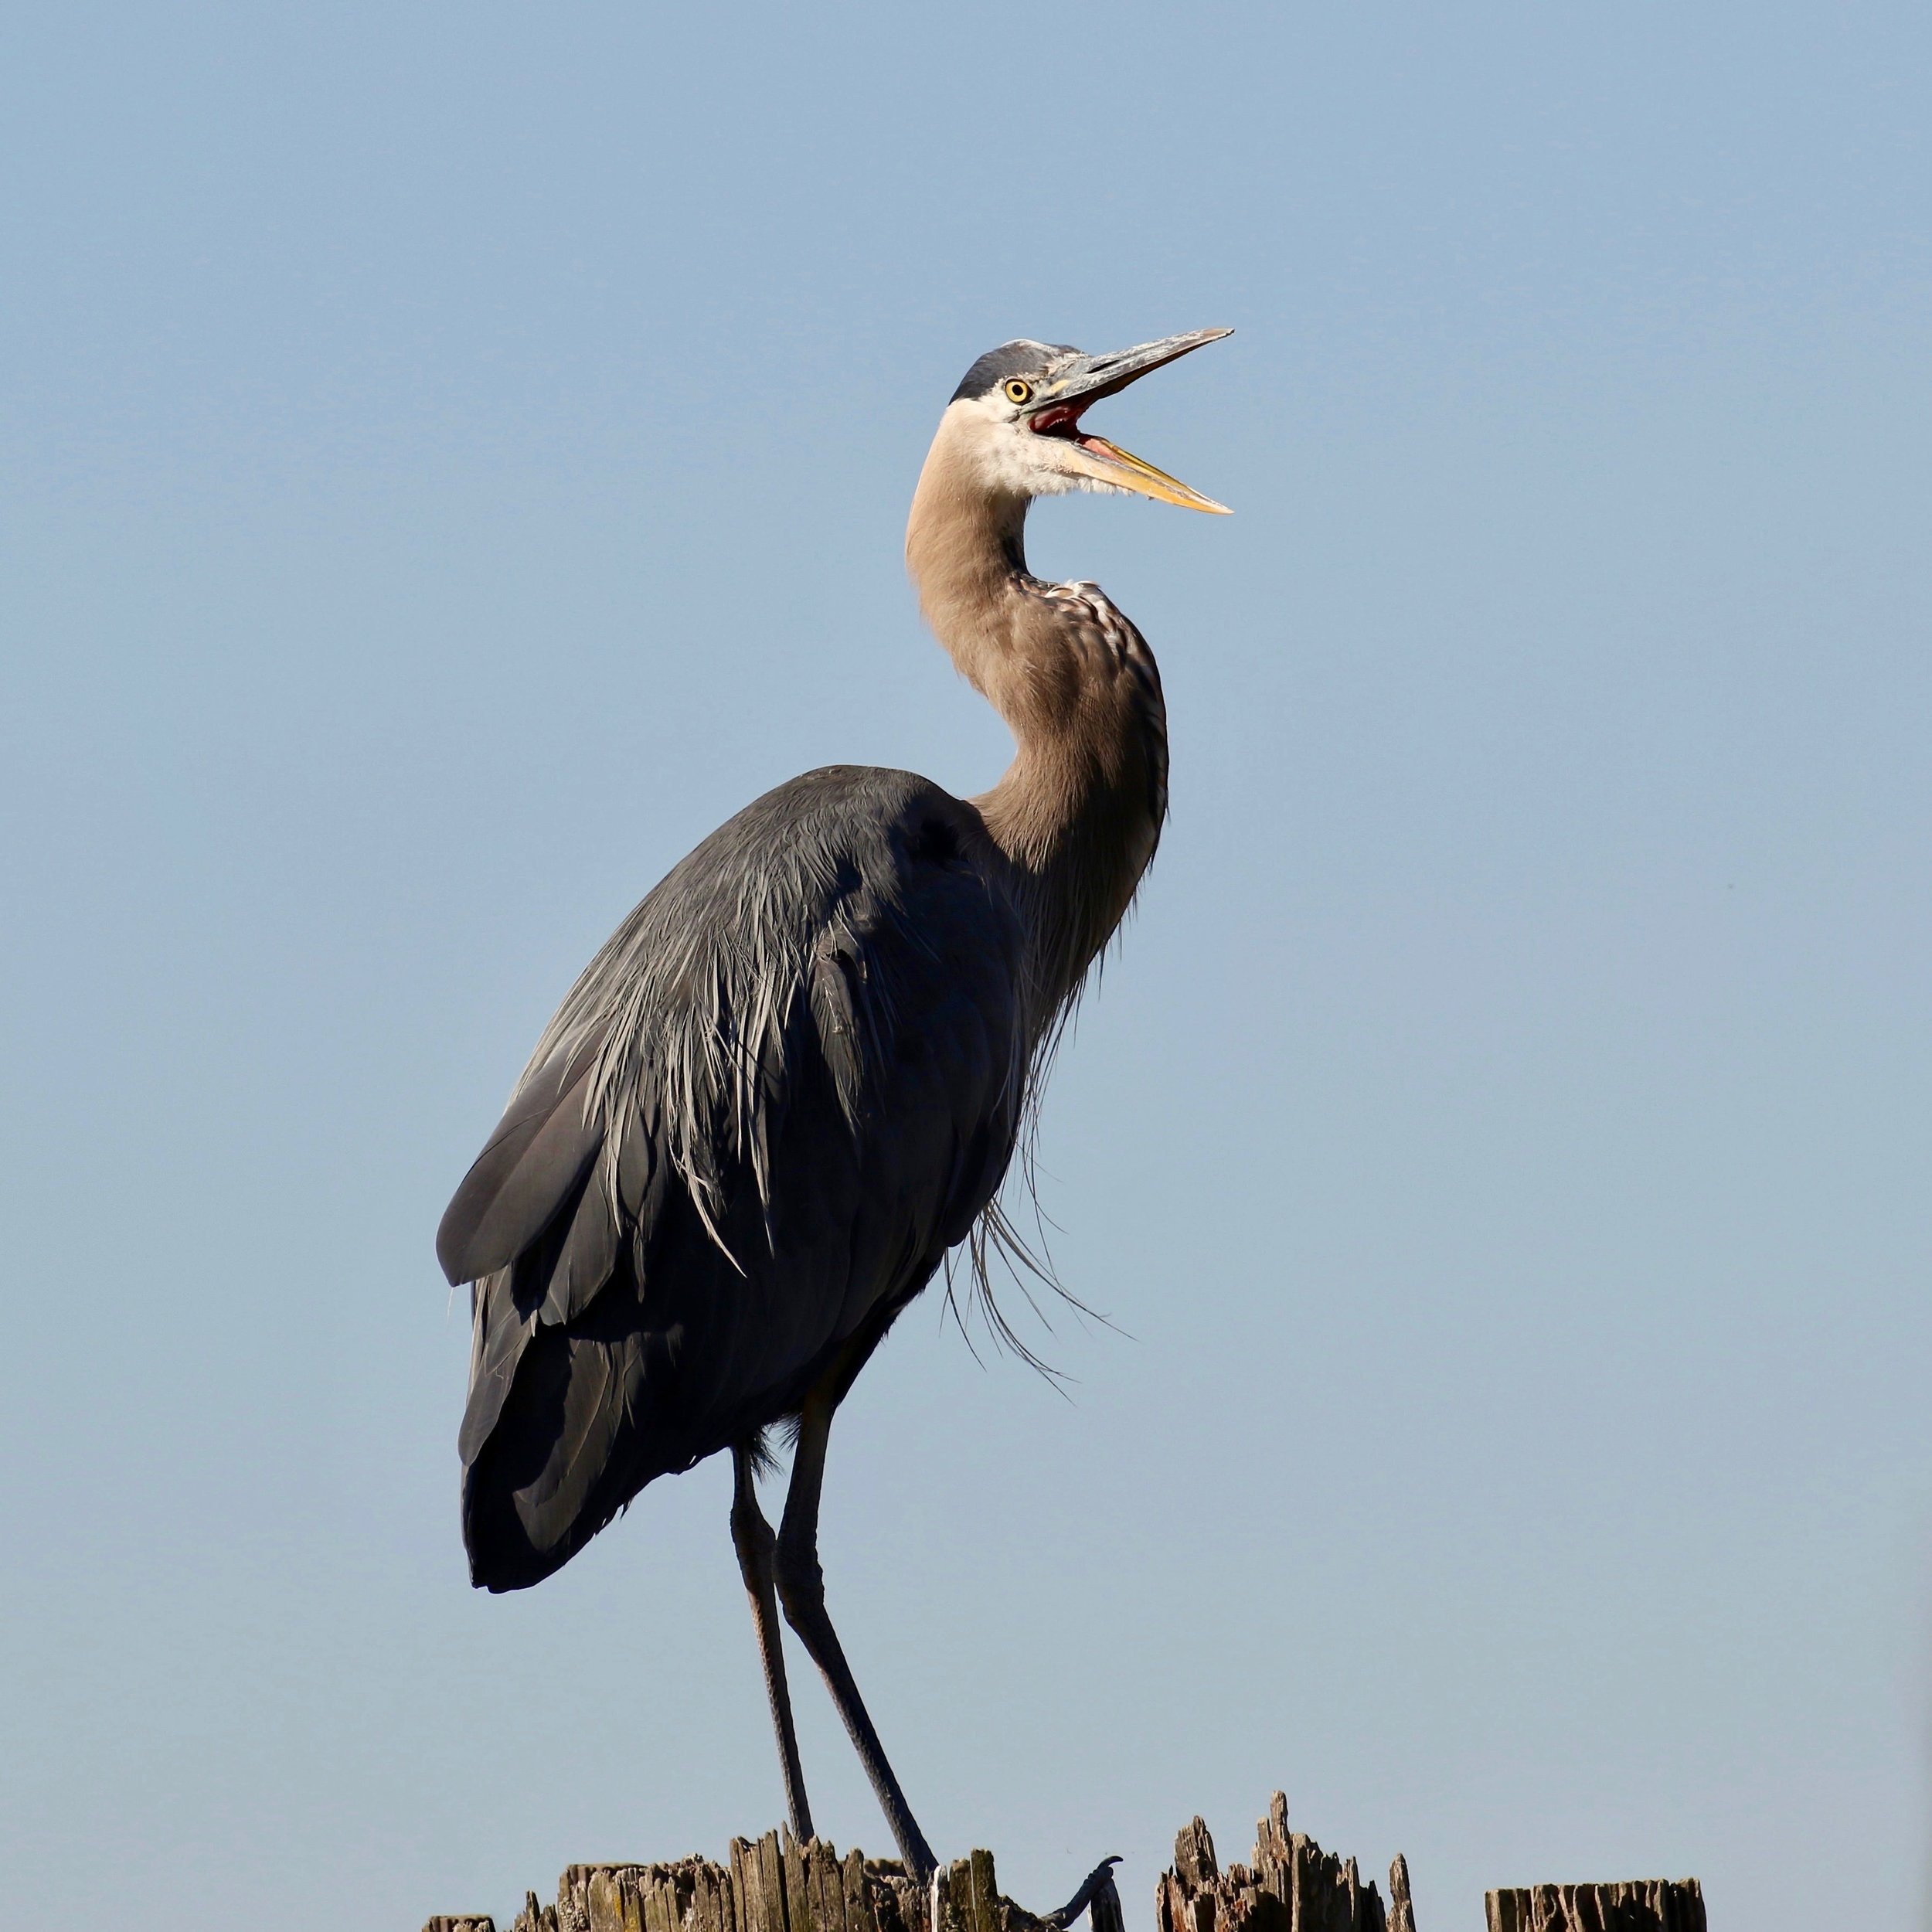 Great Blue Heron on piling in Fraser River, B.C.